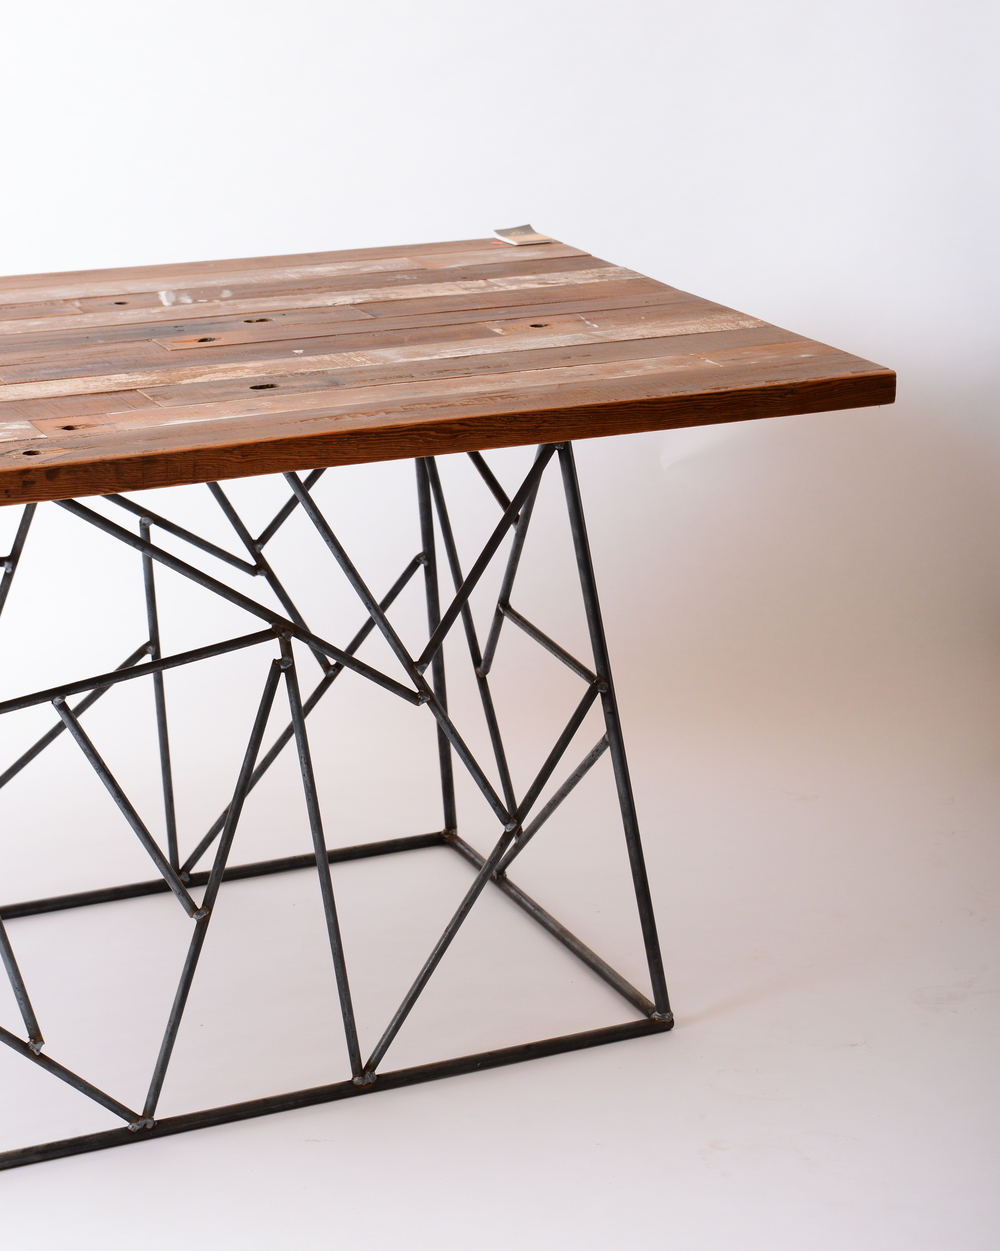 Space table